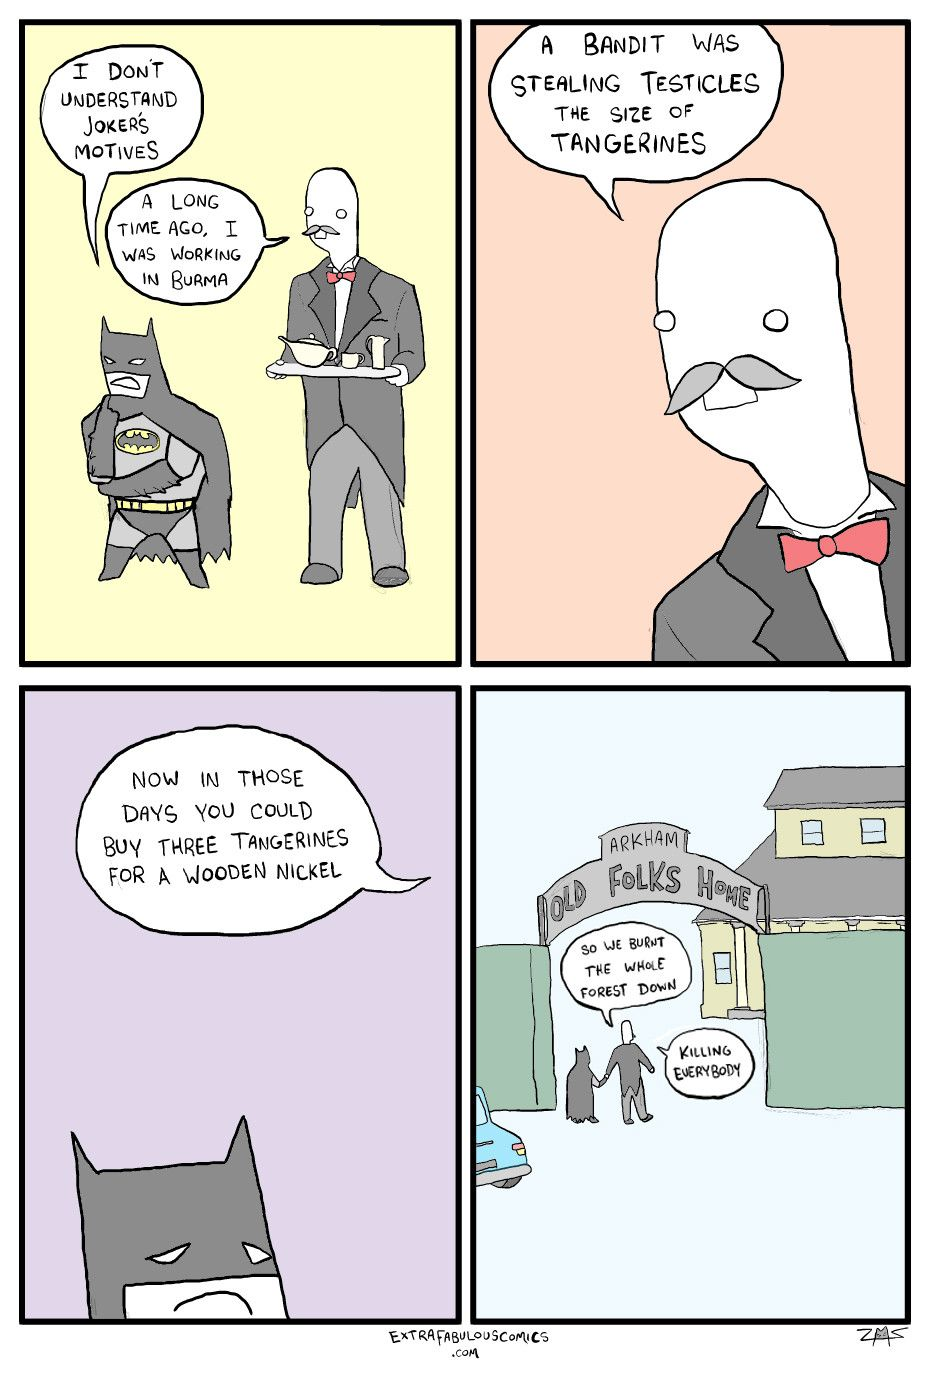 Image of: Hilarious The Best Of Extra Fabulous Comics Imgur Pinterest The Best Of Extra Fabulous Comics Superheroes Pinterest Funny